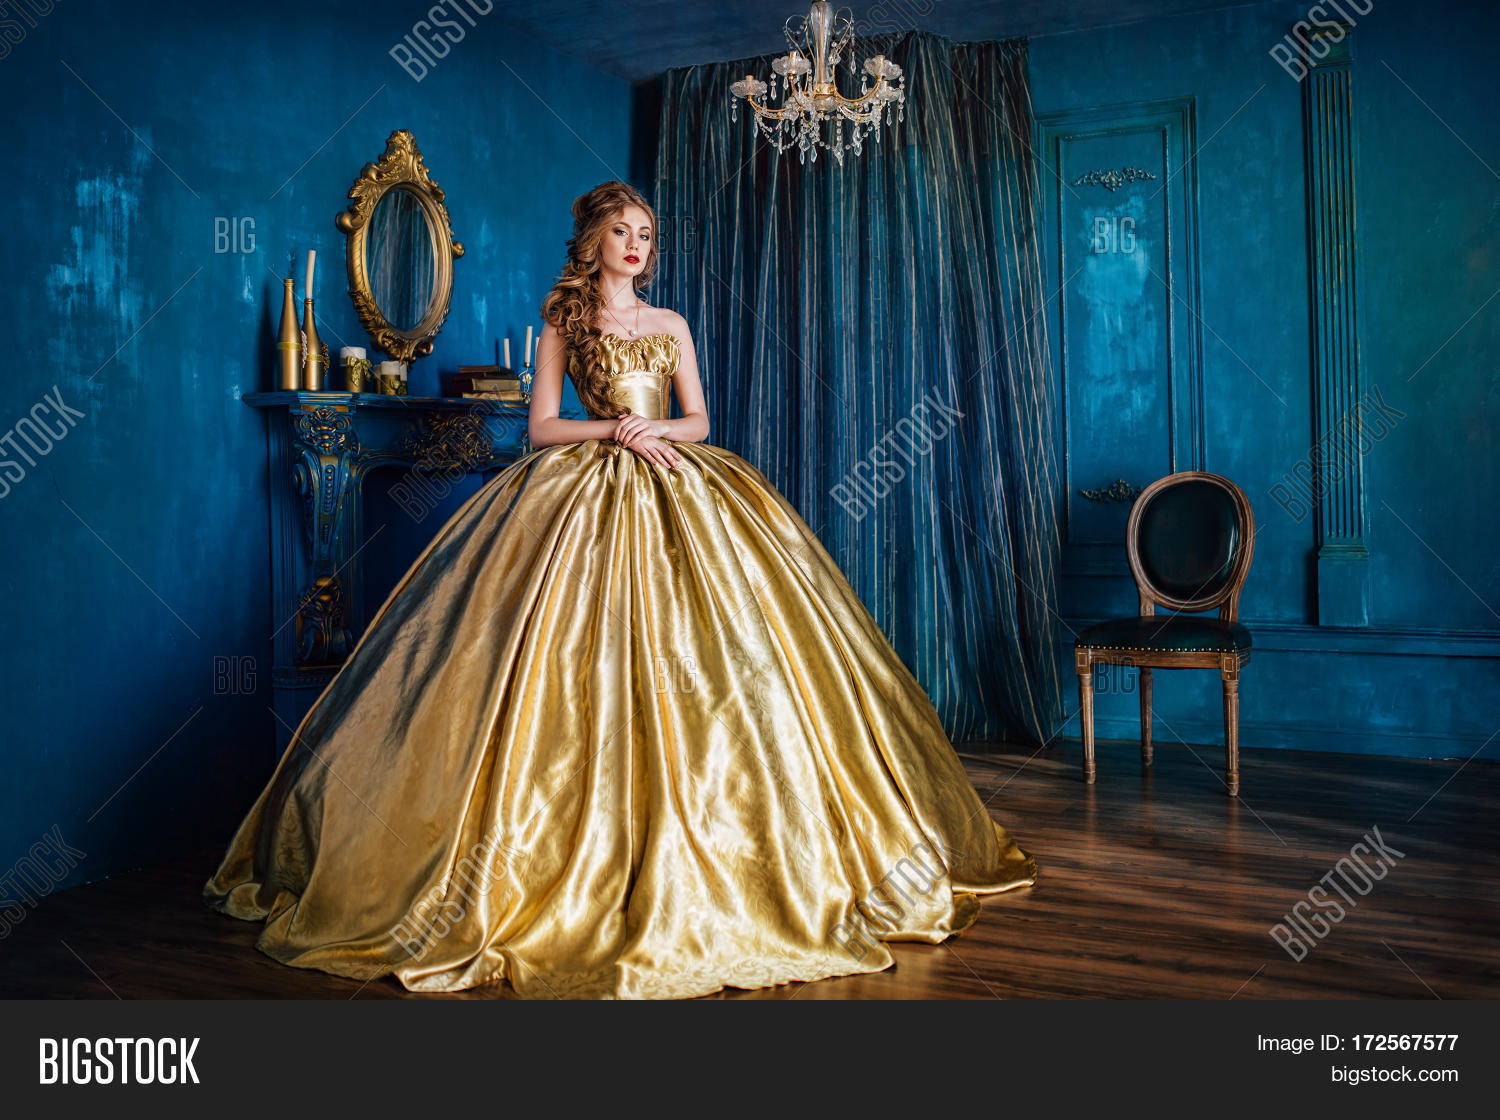 Beautiful Woman Golden Image & Photo (Free Trial) | Bigstock